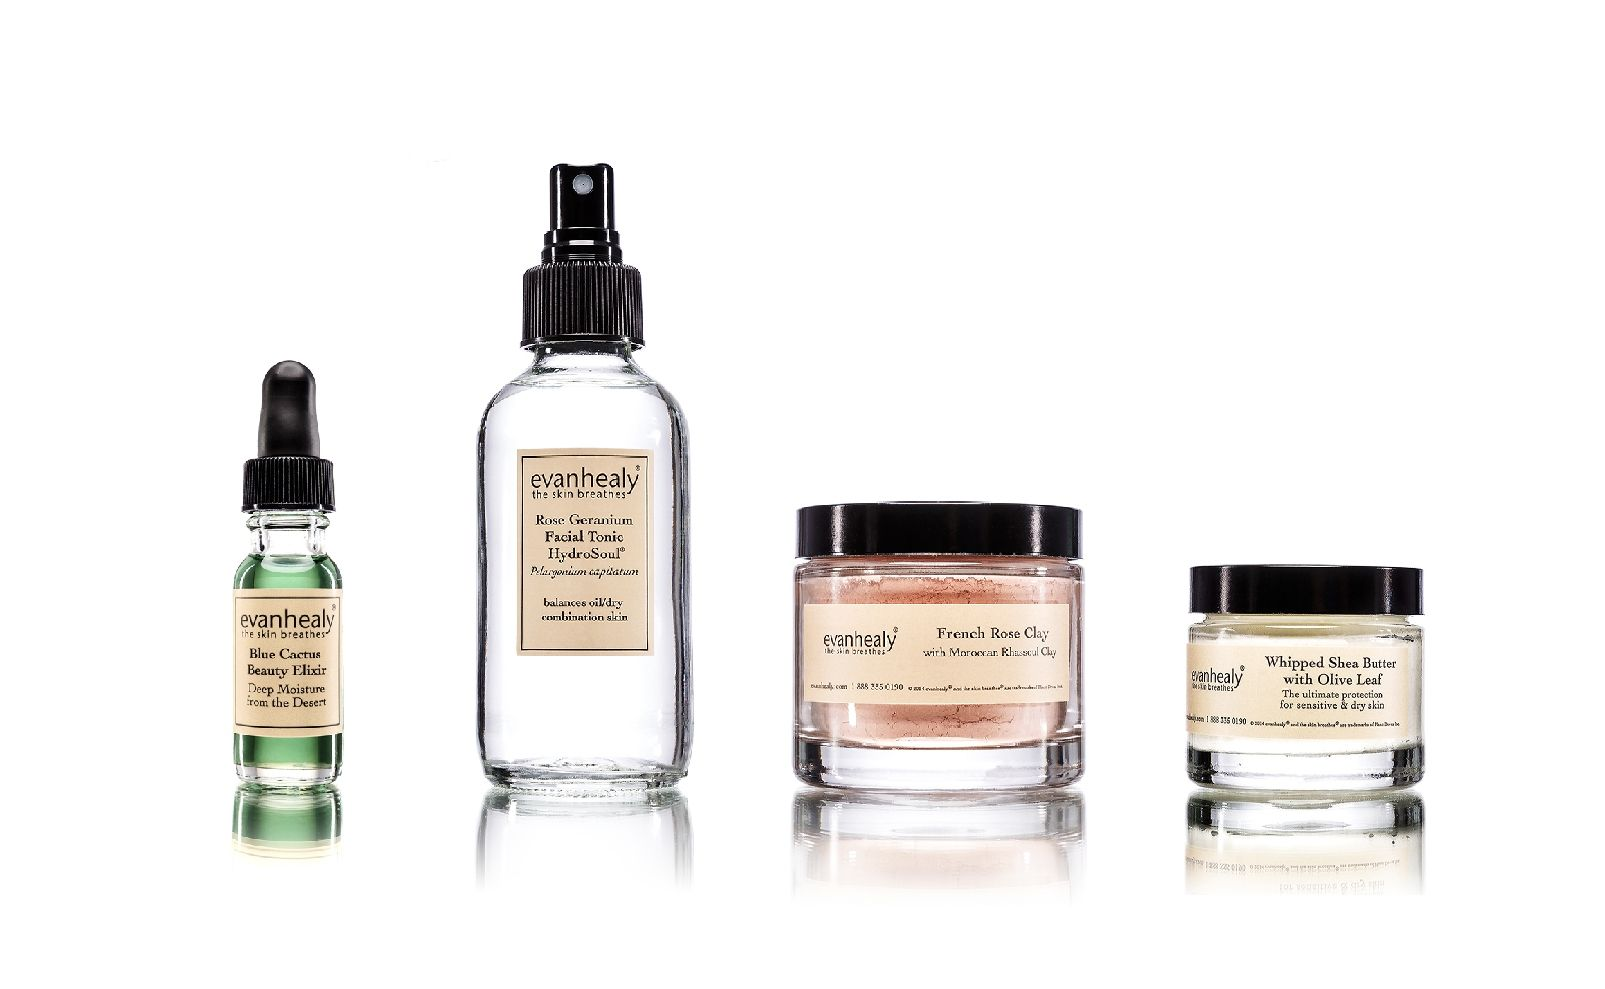 Evanhealy Organic Skin Care Products Natural Skincare Line Natural Skin Care Organic Skin Care Skin Care